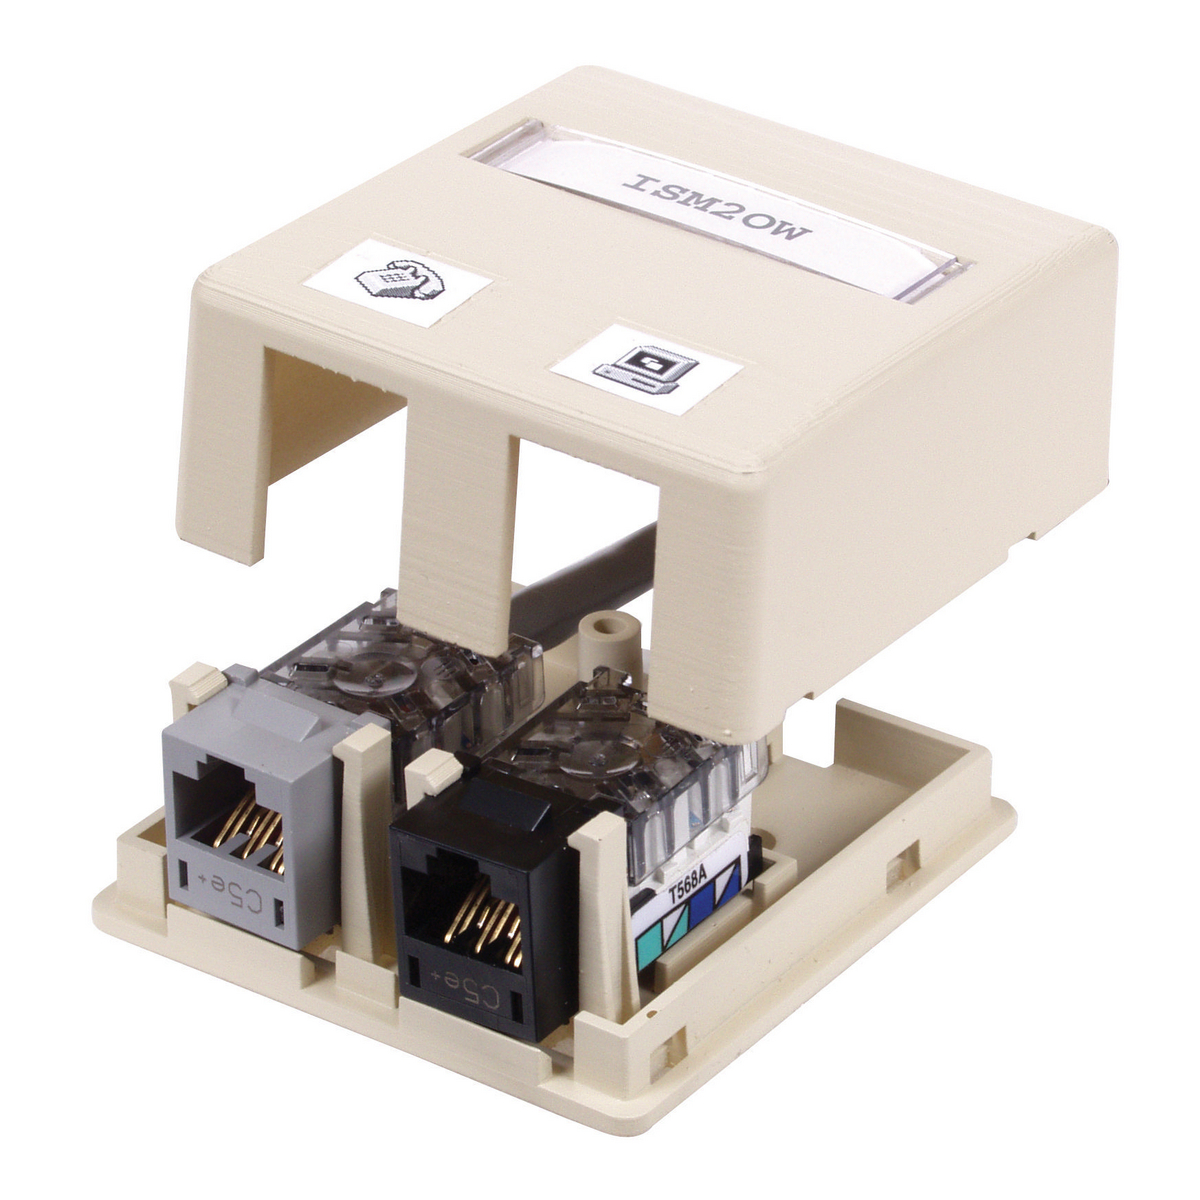 Hubbell ISB2OW 2-Port Office White High Impact Resistant Flame Retardant Polymer Surface Mount Box